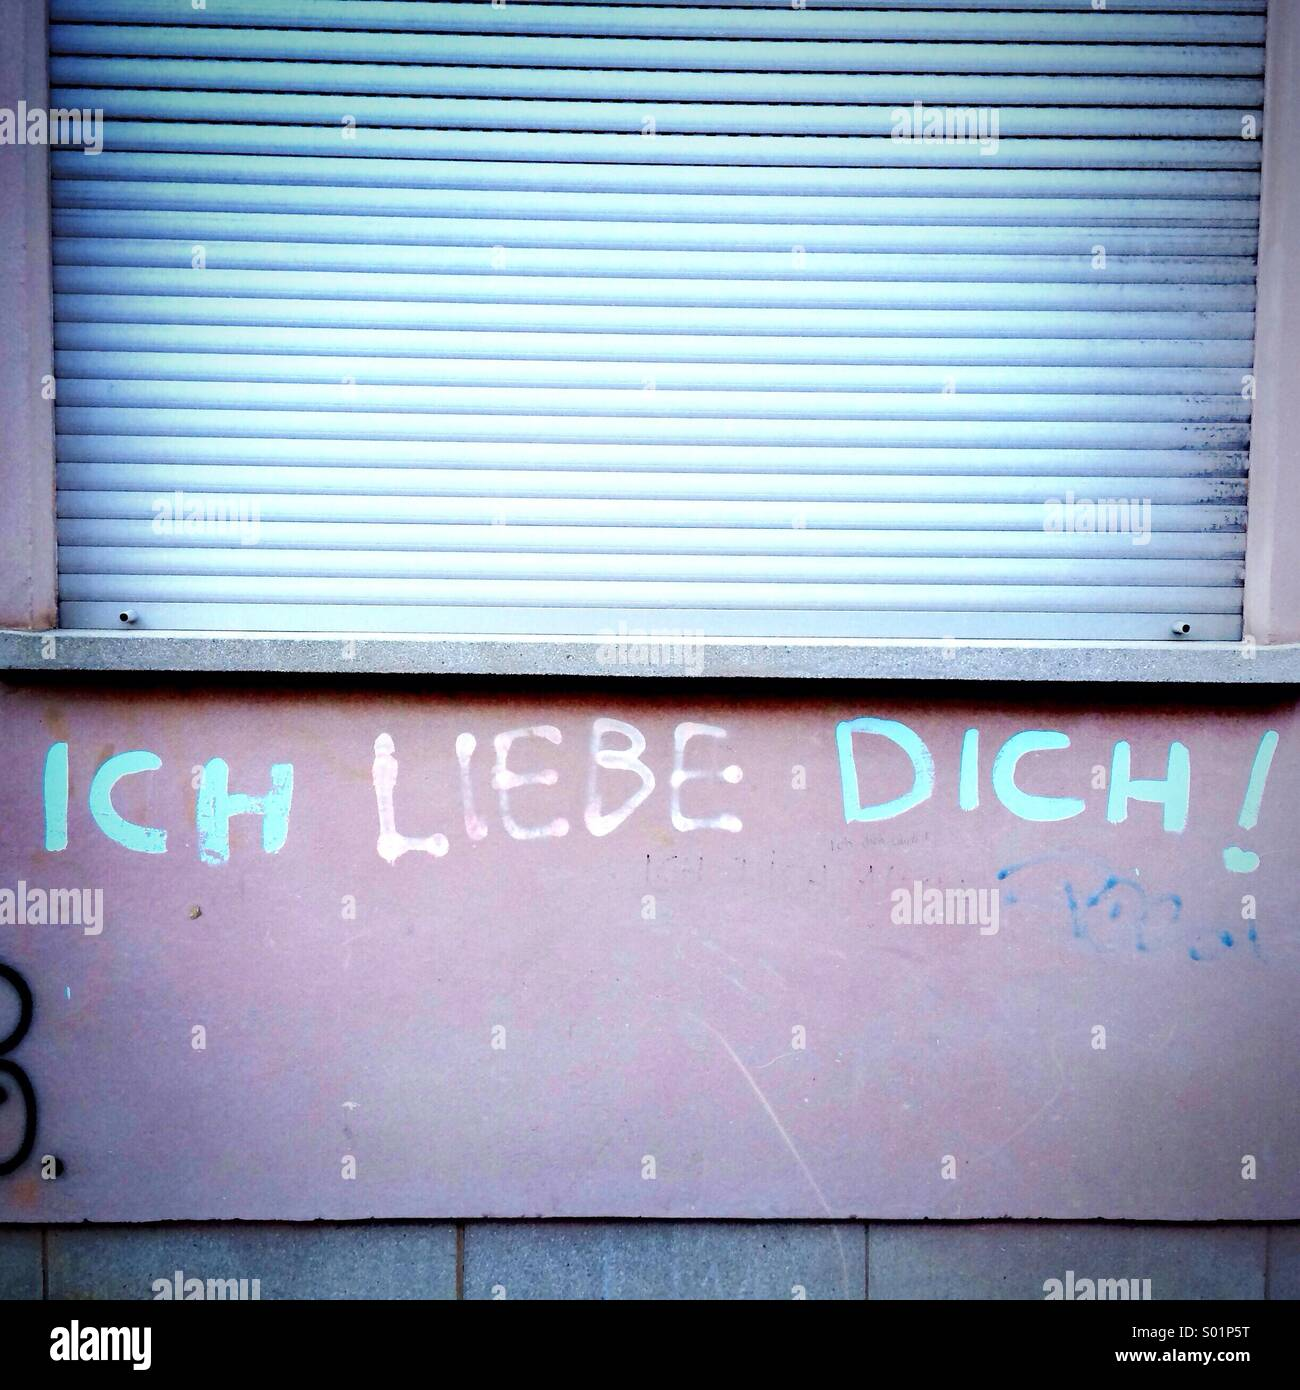 Ich liebe Dich I love you - Stock Image